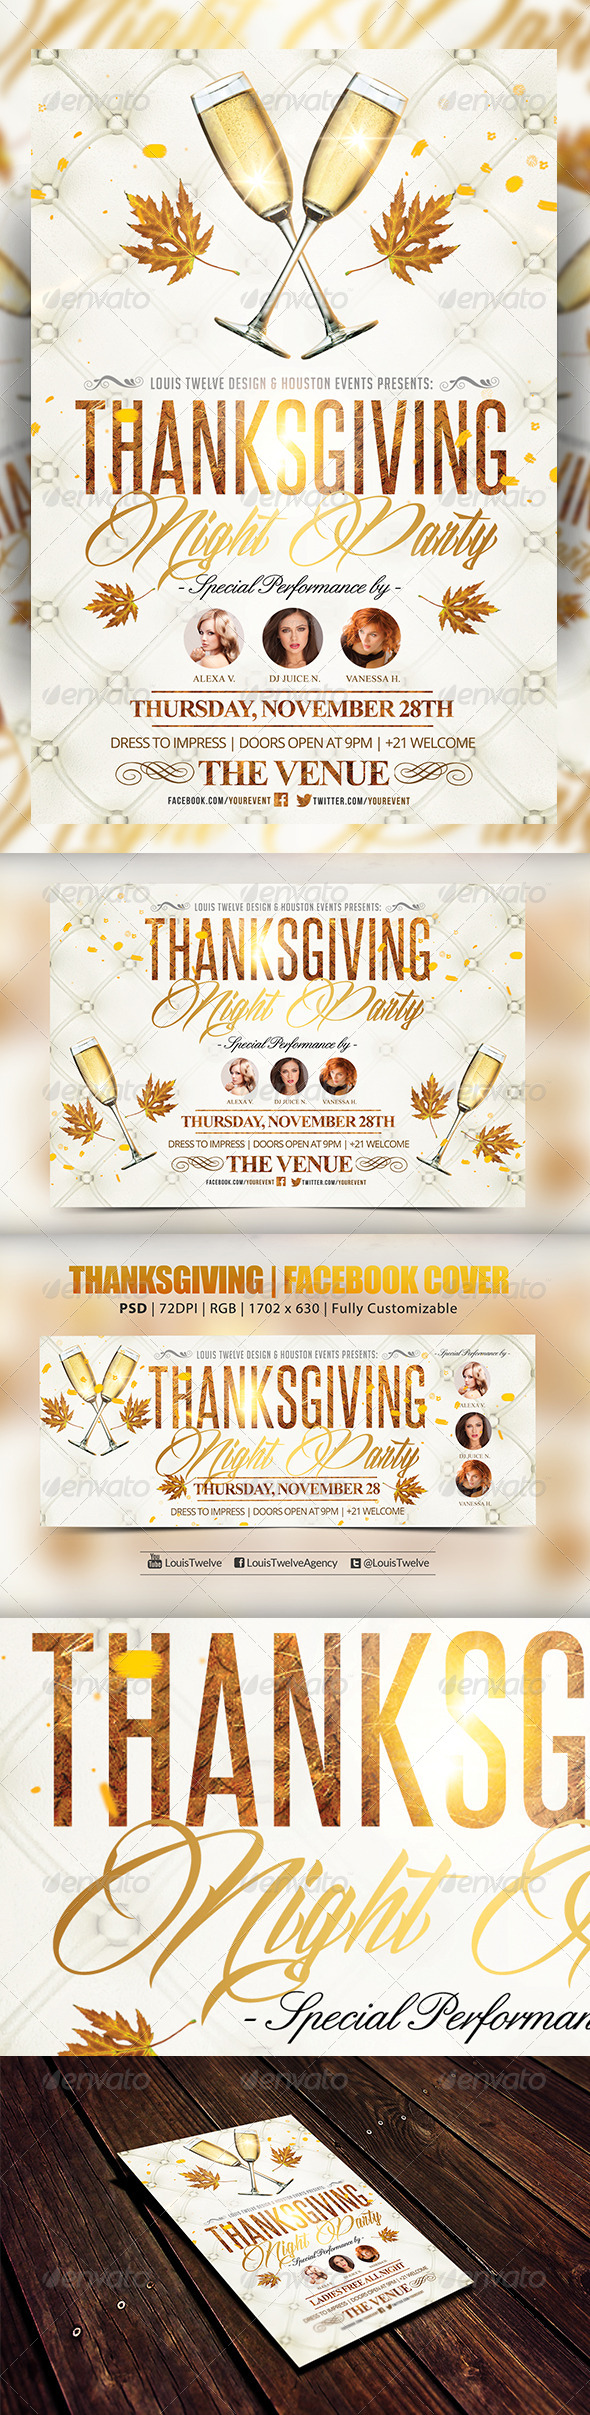 GraphicRiver Thanksgiving Night Vertical Horizontal & FB Cover 5921274